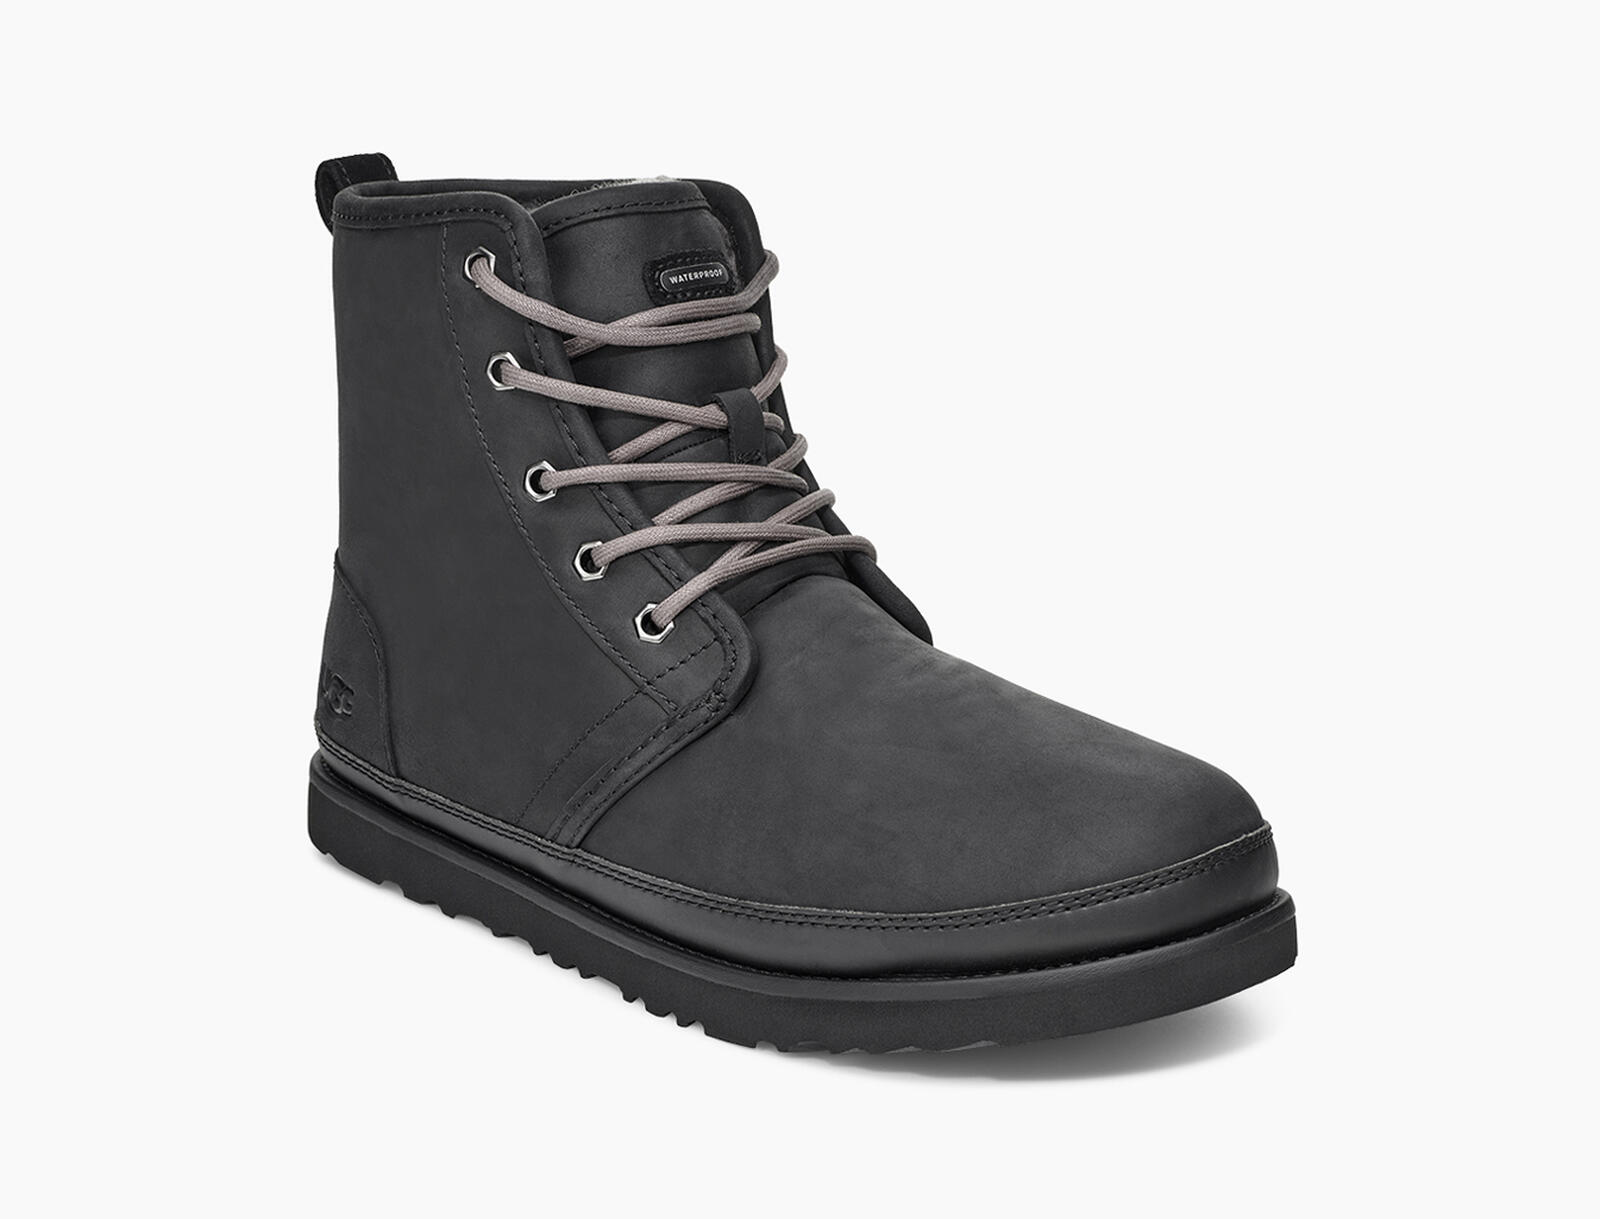 Harkley Waterproof Classic Boot